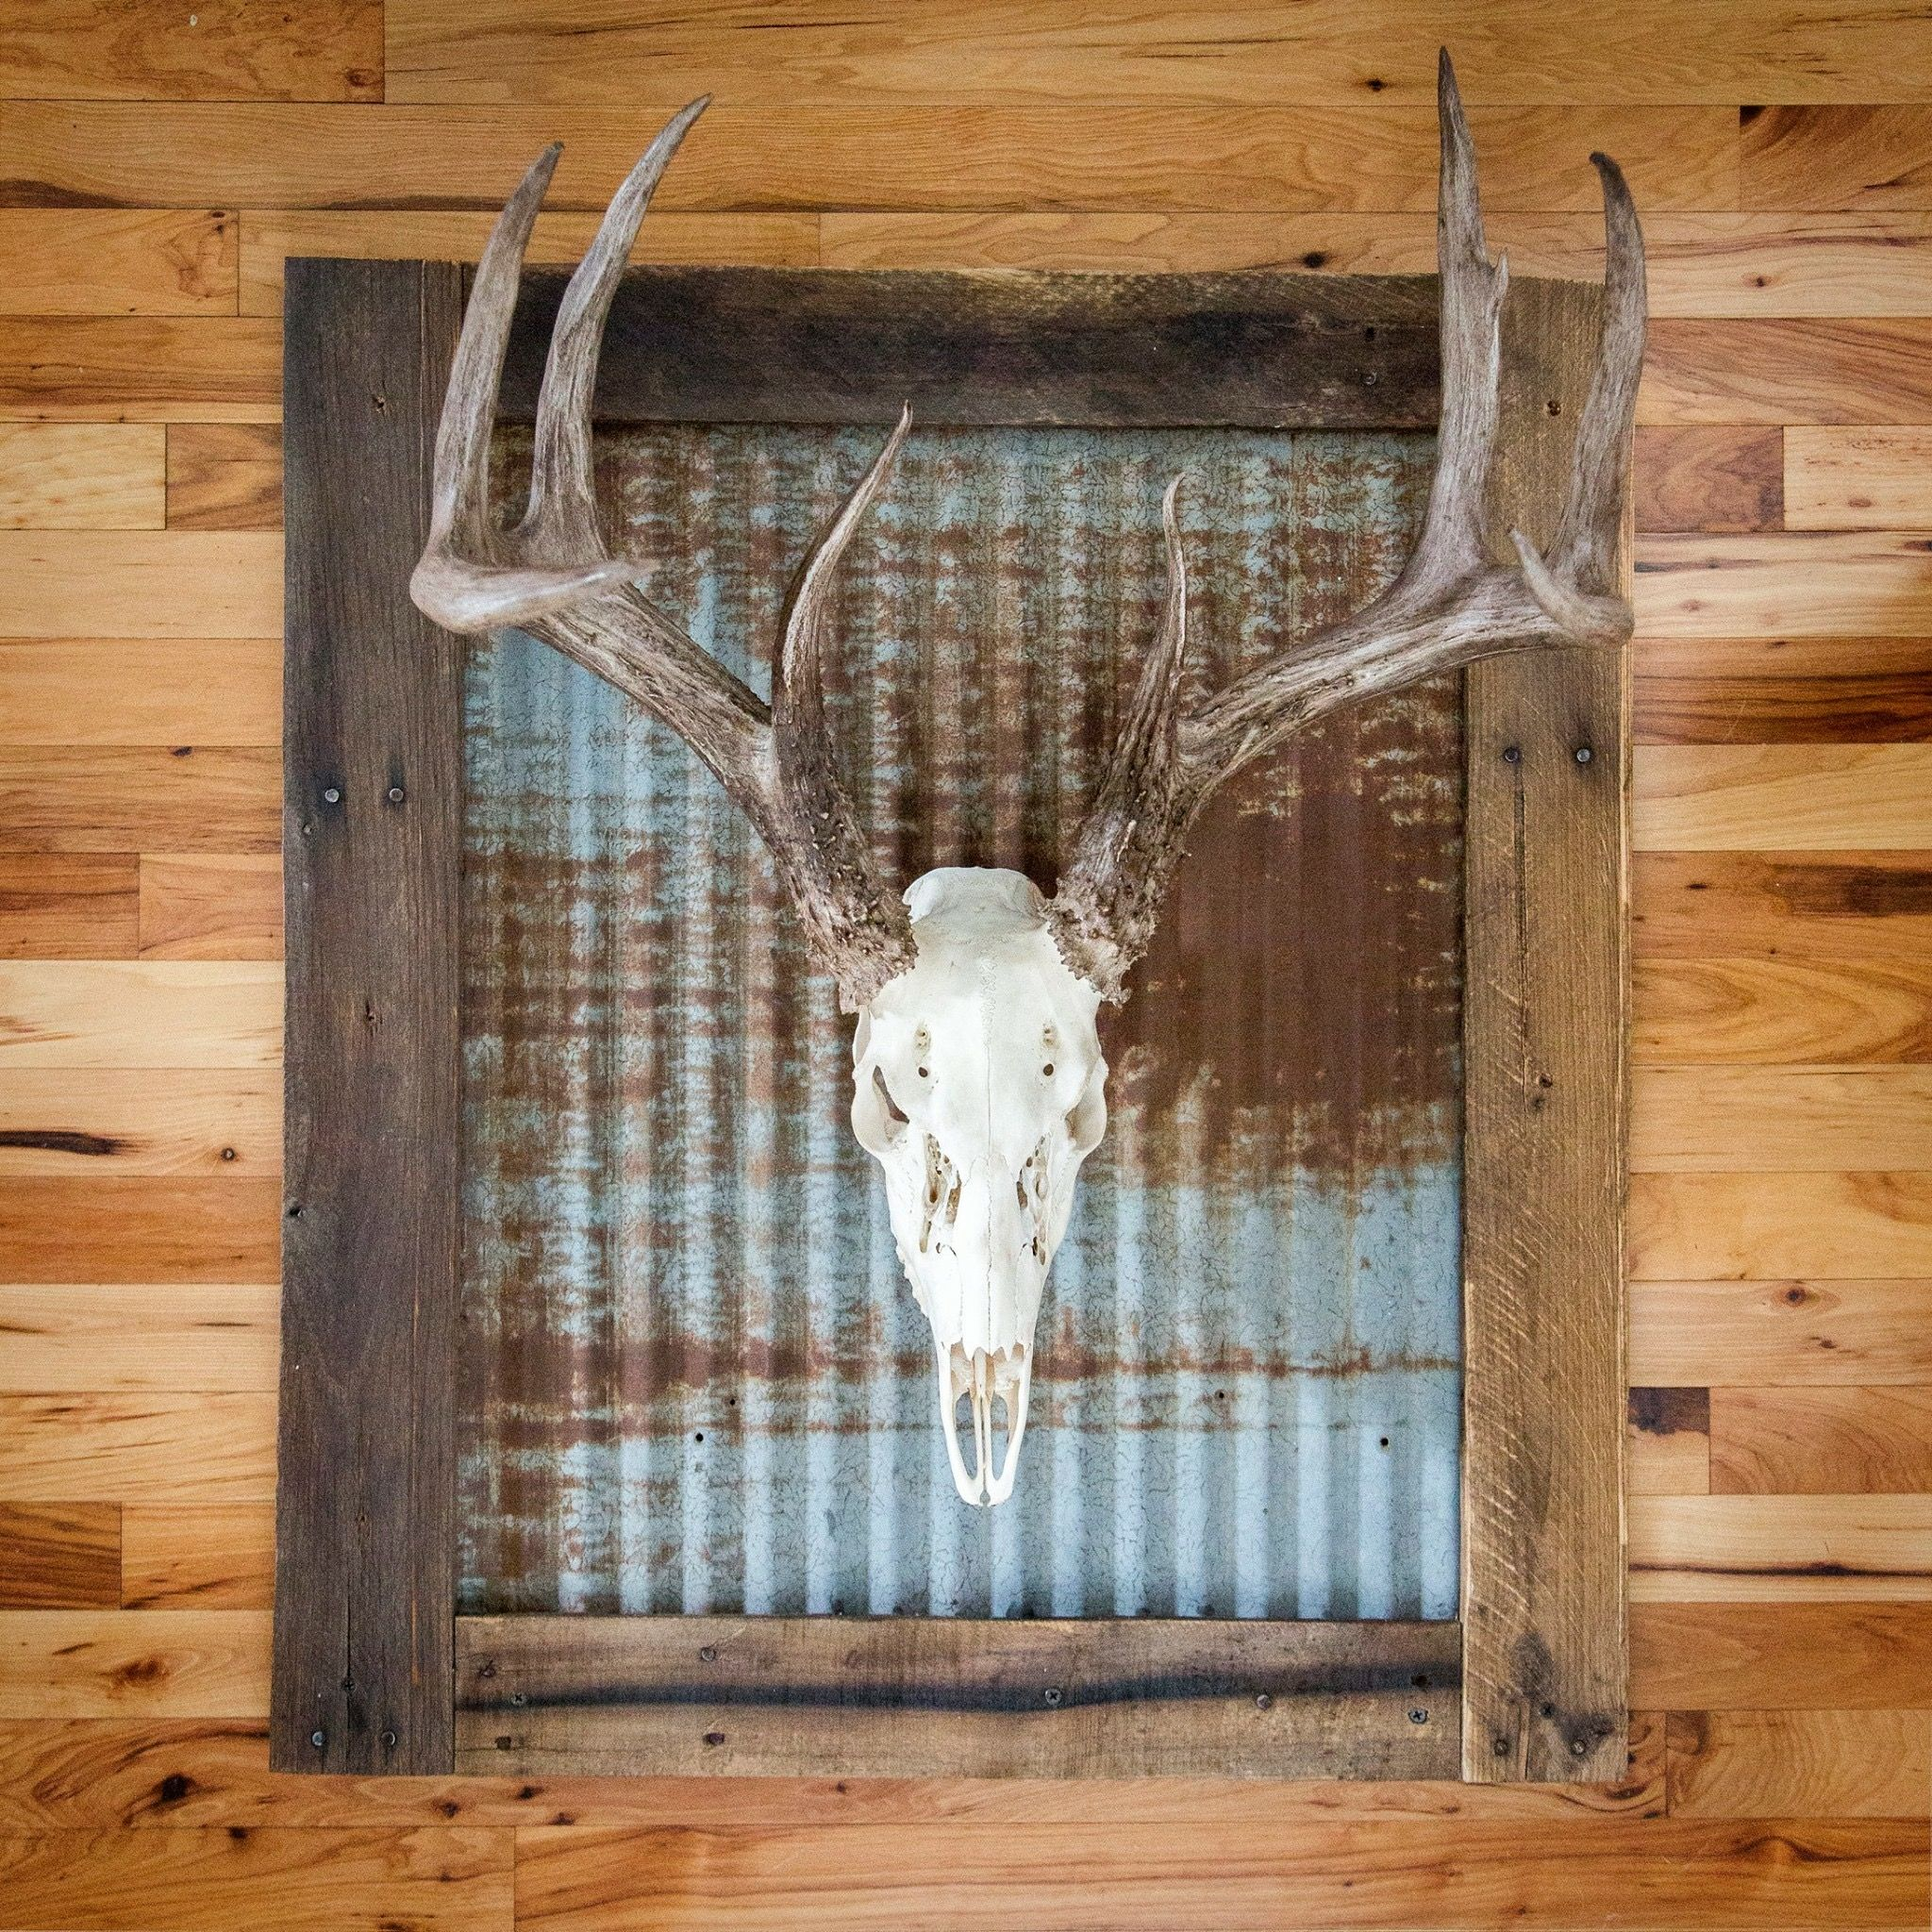 Deer skull mount ideas - Whitened Skull With Rustic Tin Wall Frame Includes Wall Mounting Hardware And Skull Mounting Bracket